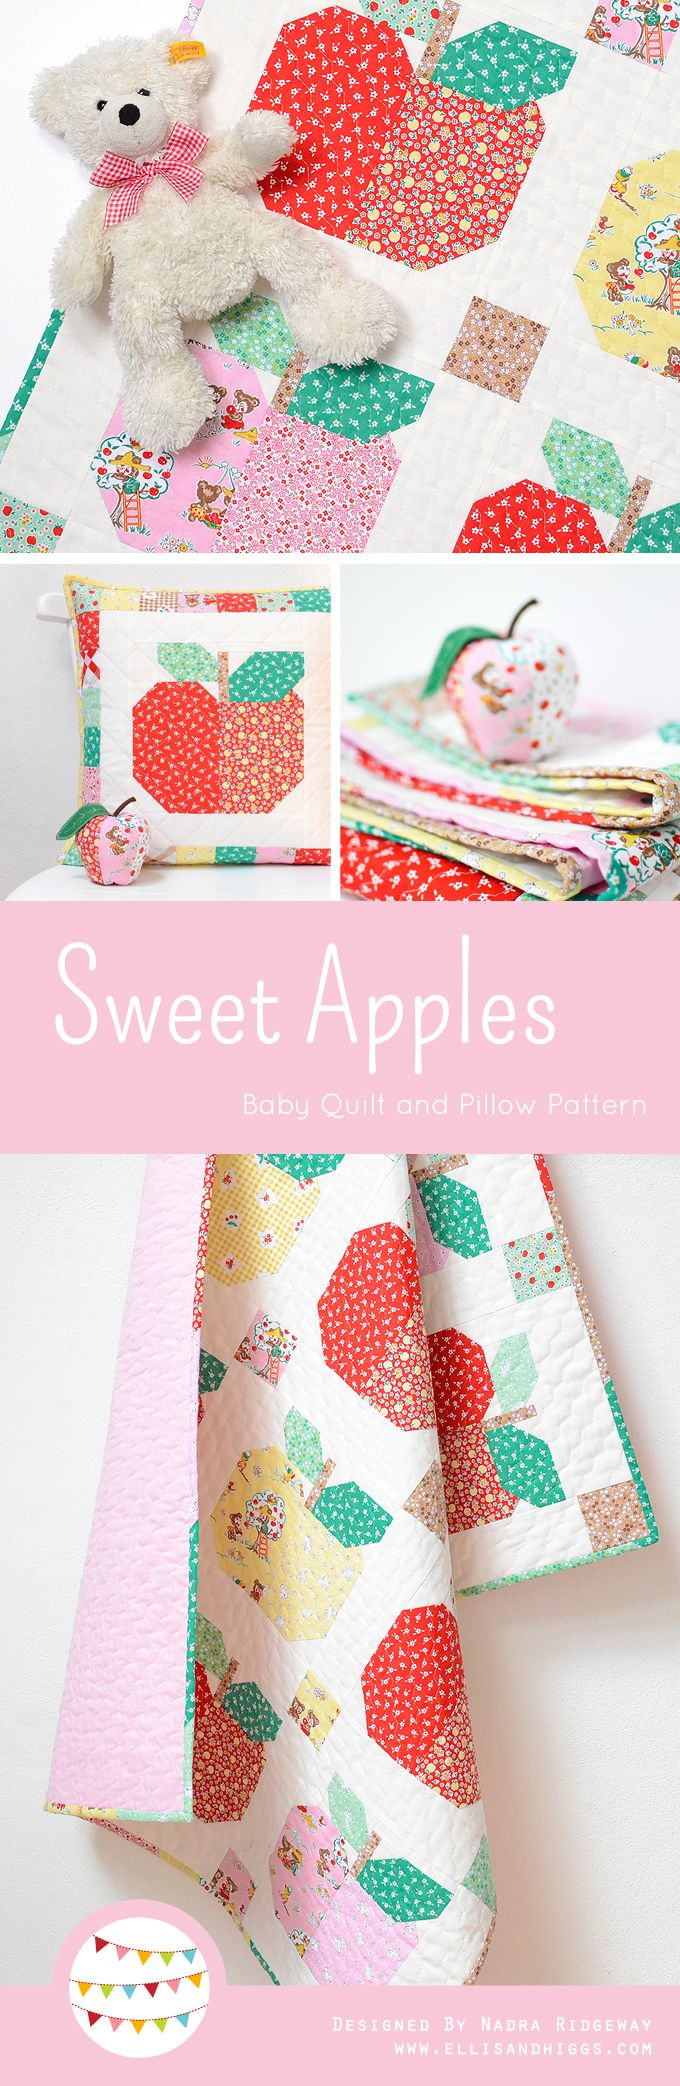 Sweet Apples Baby Quilt and Pillow Pattern by Nadra Ridgeway